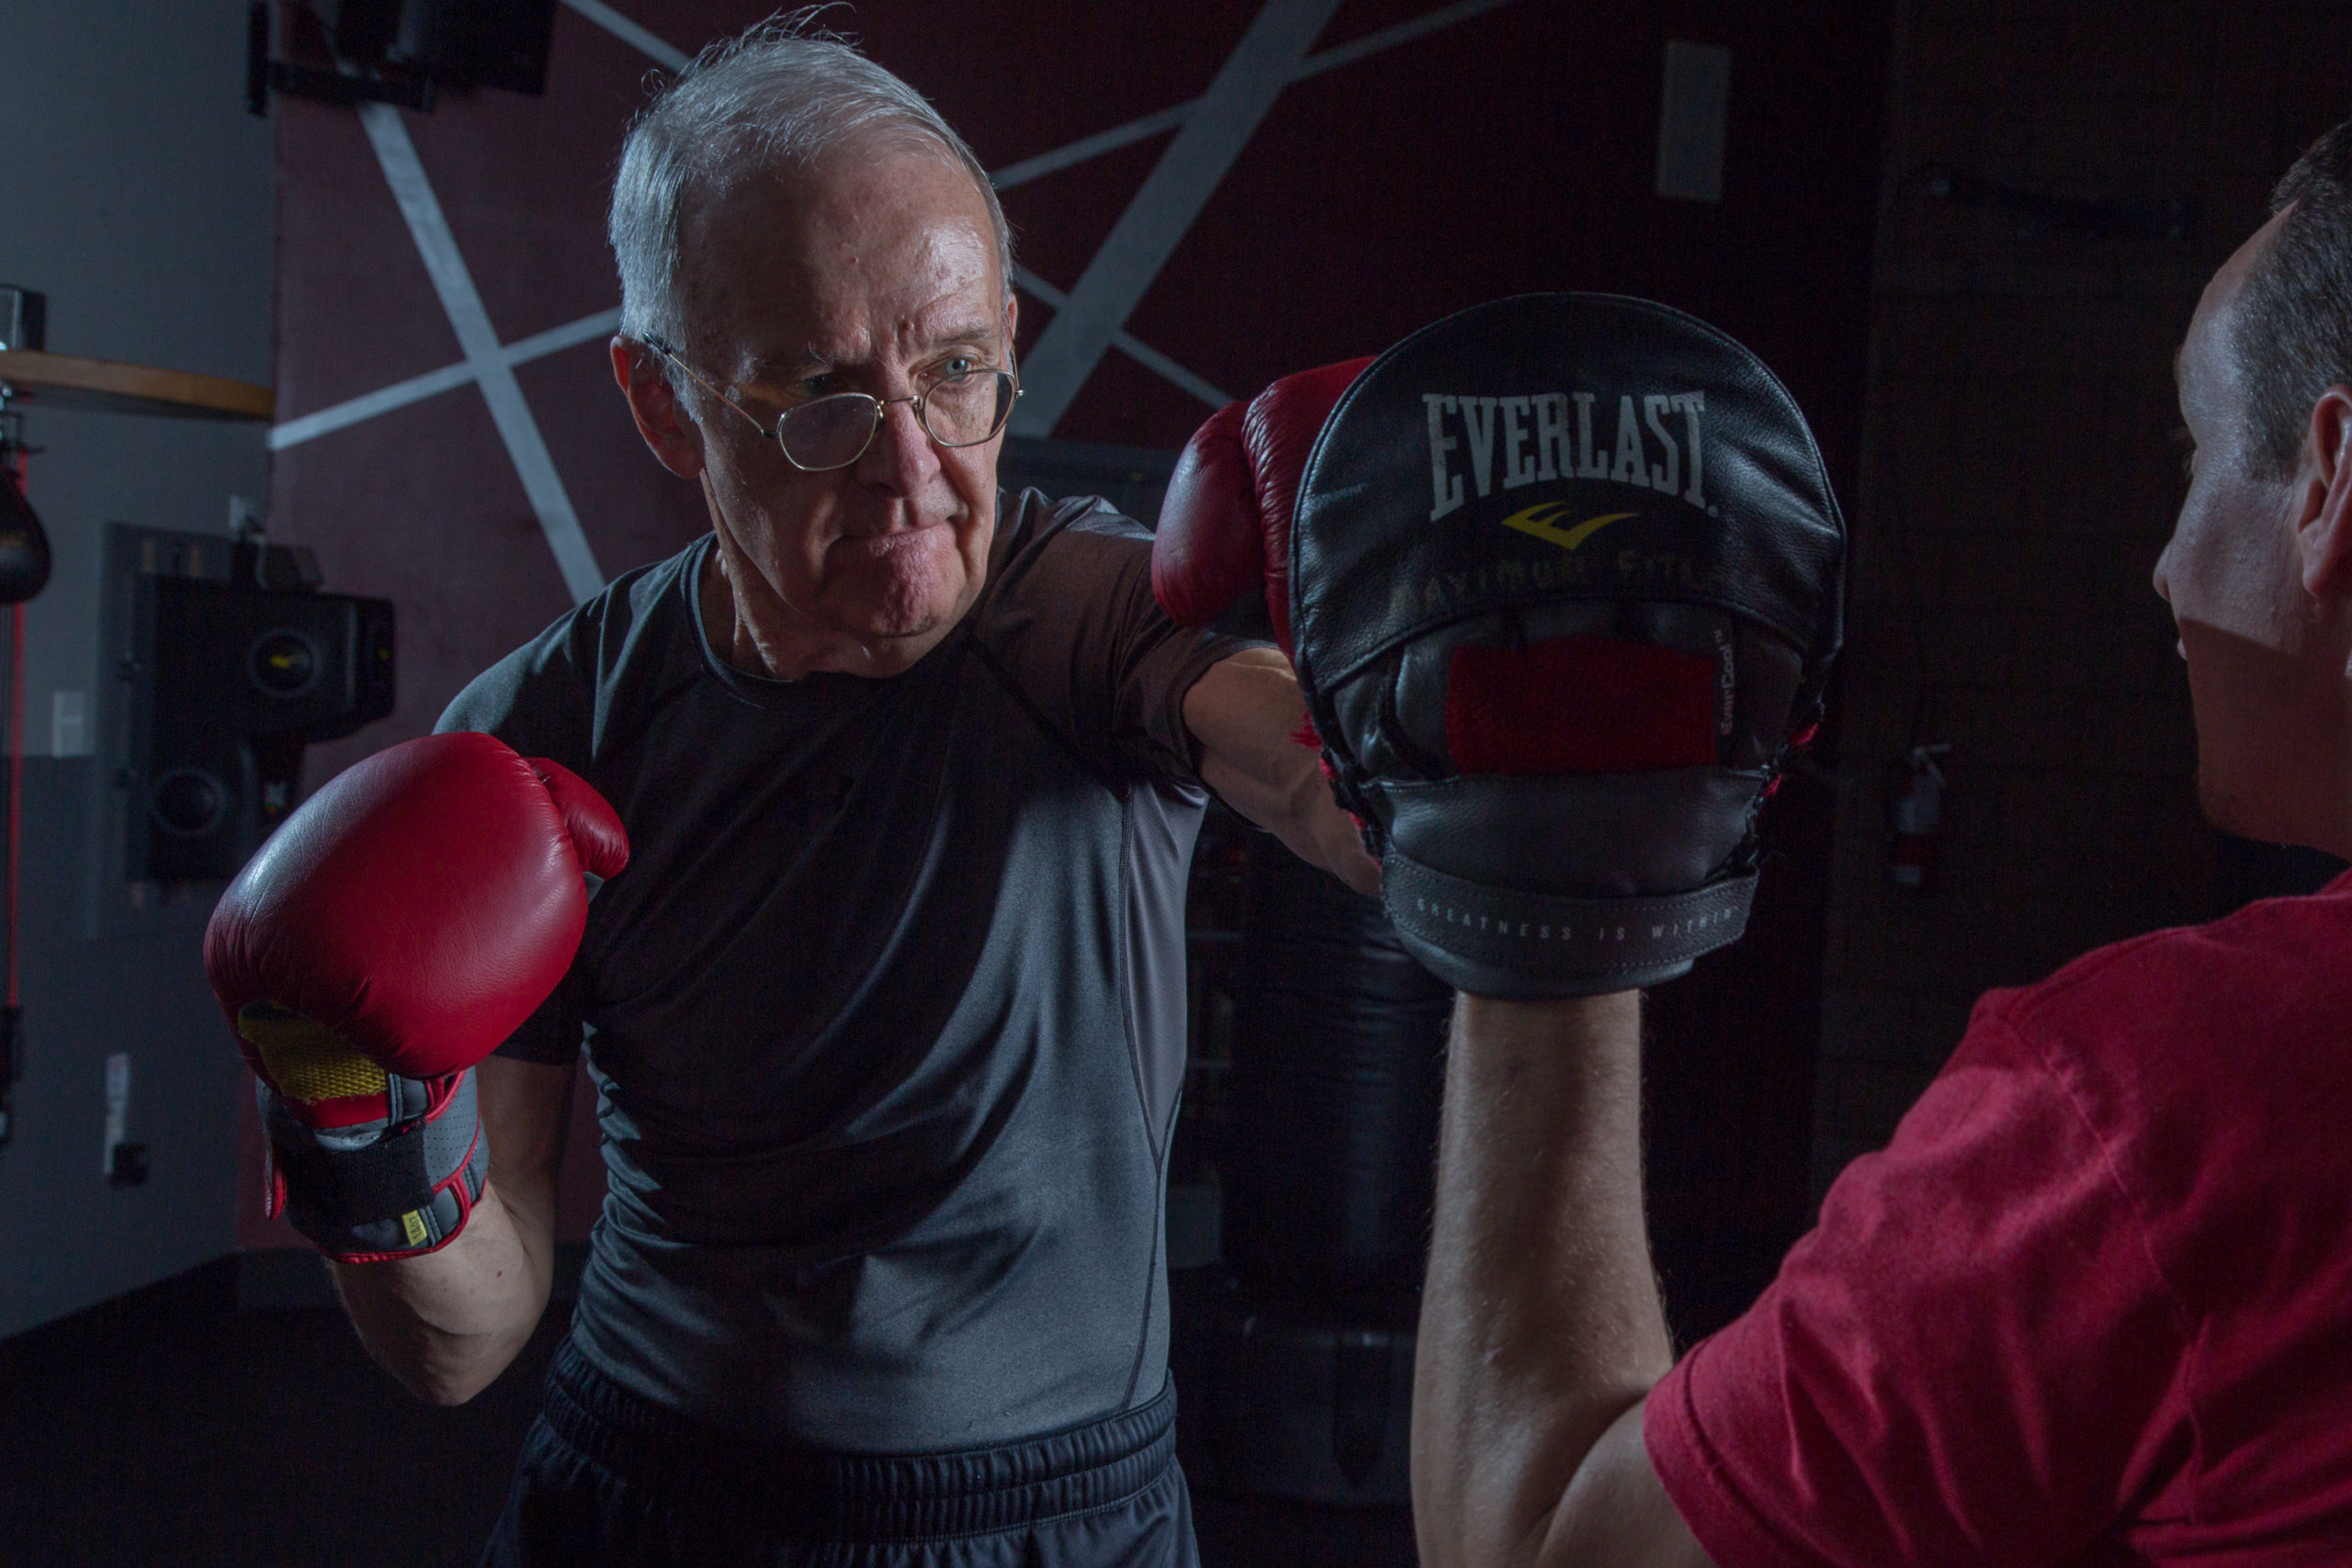 Elderly man boxing with a coach